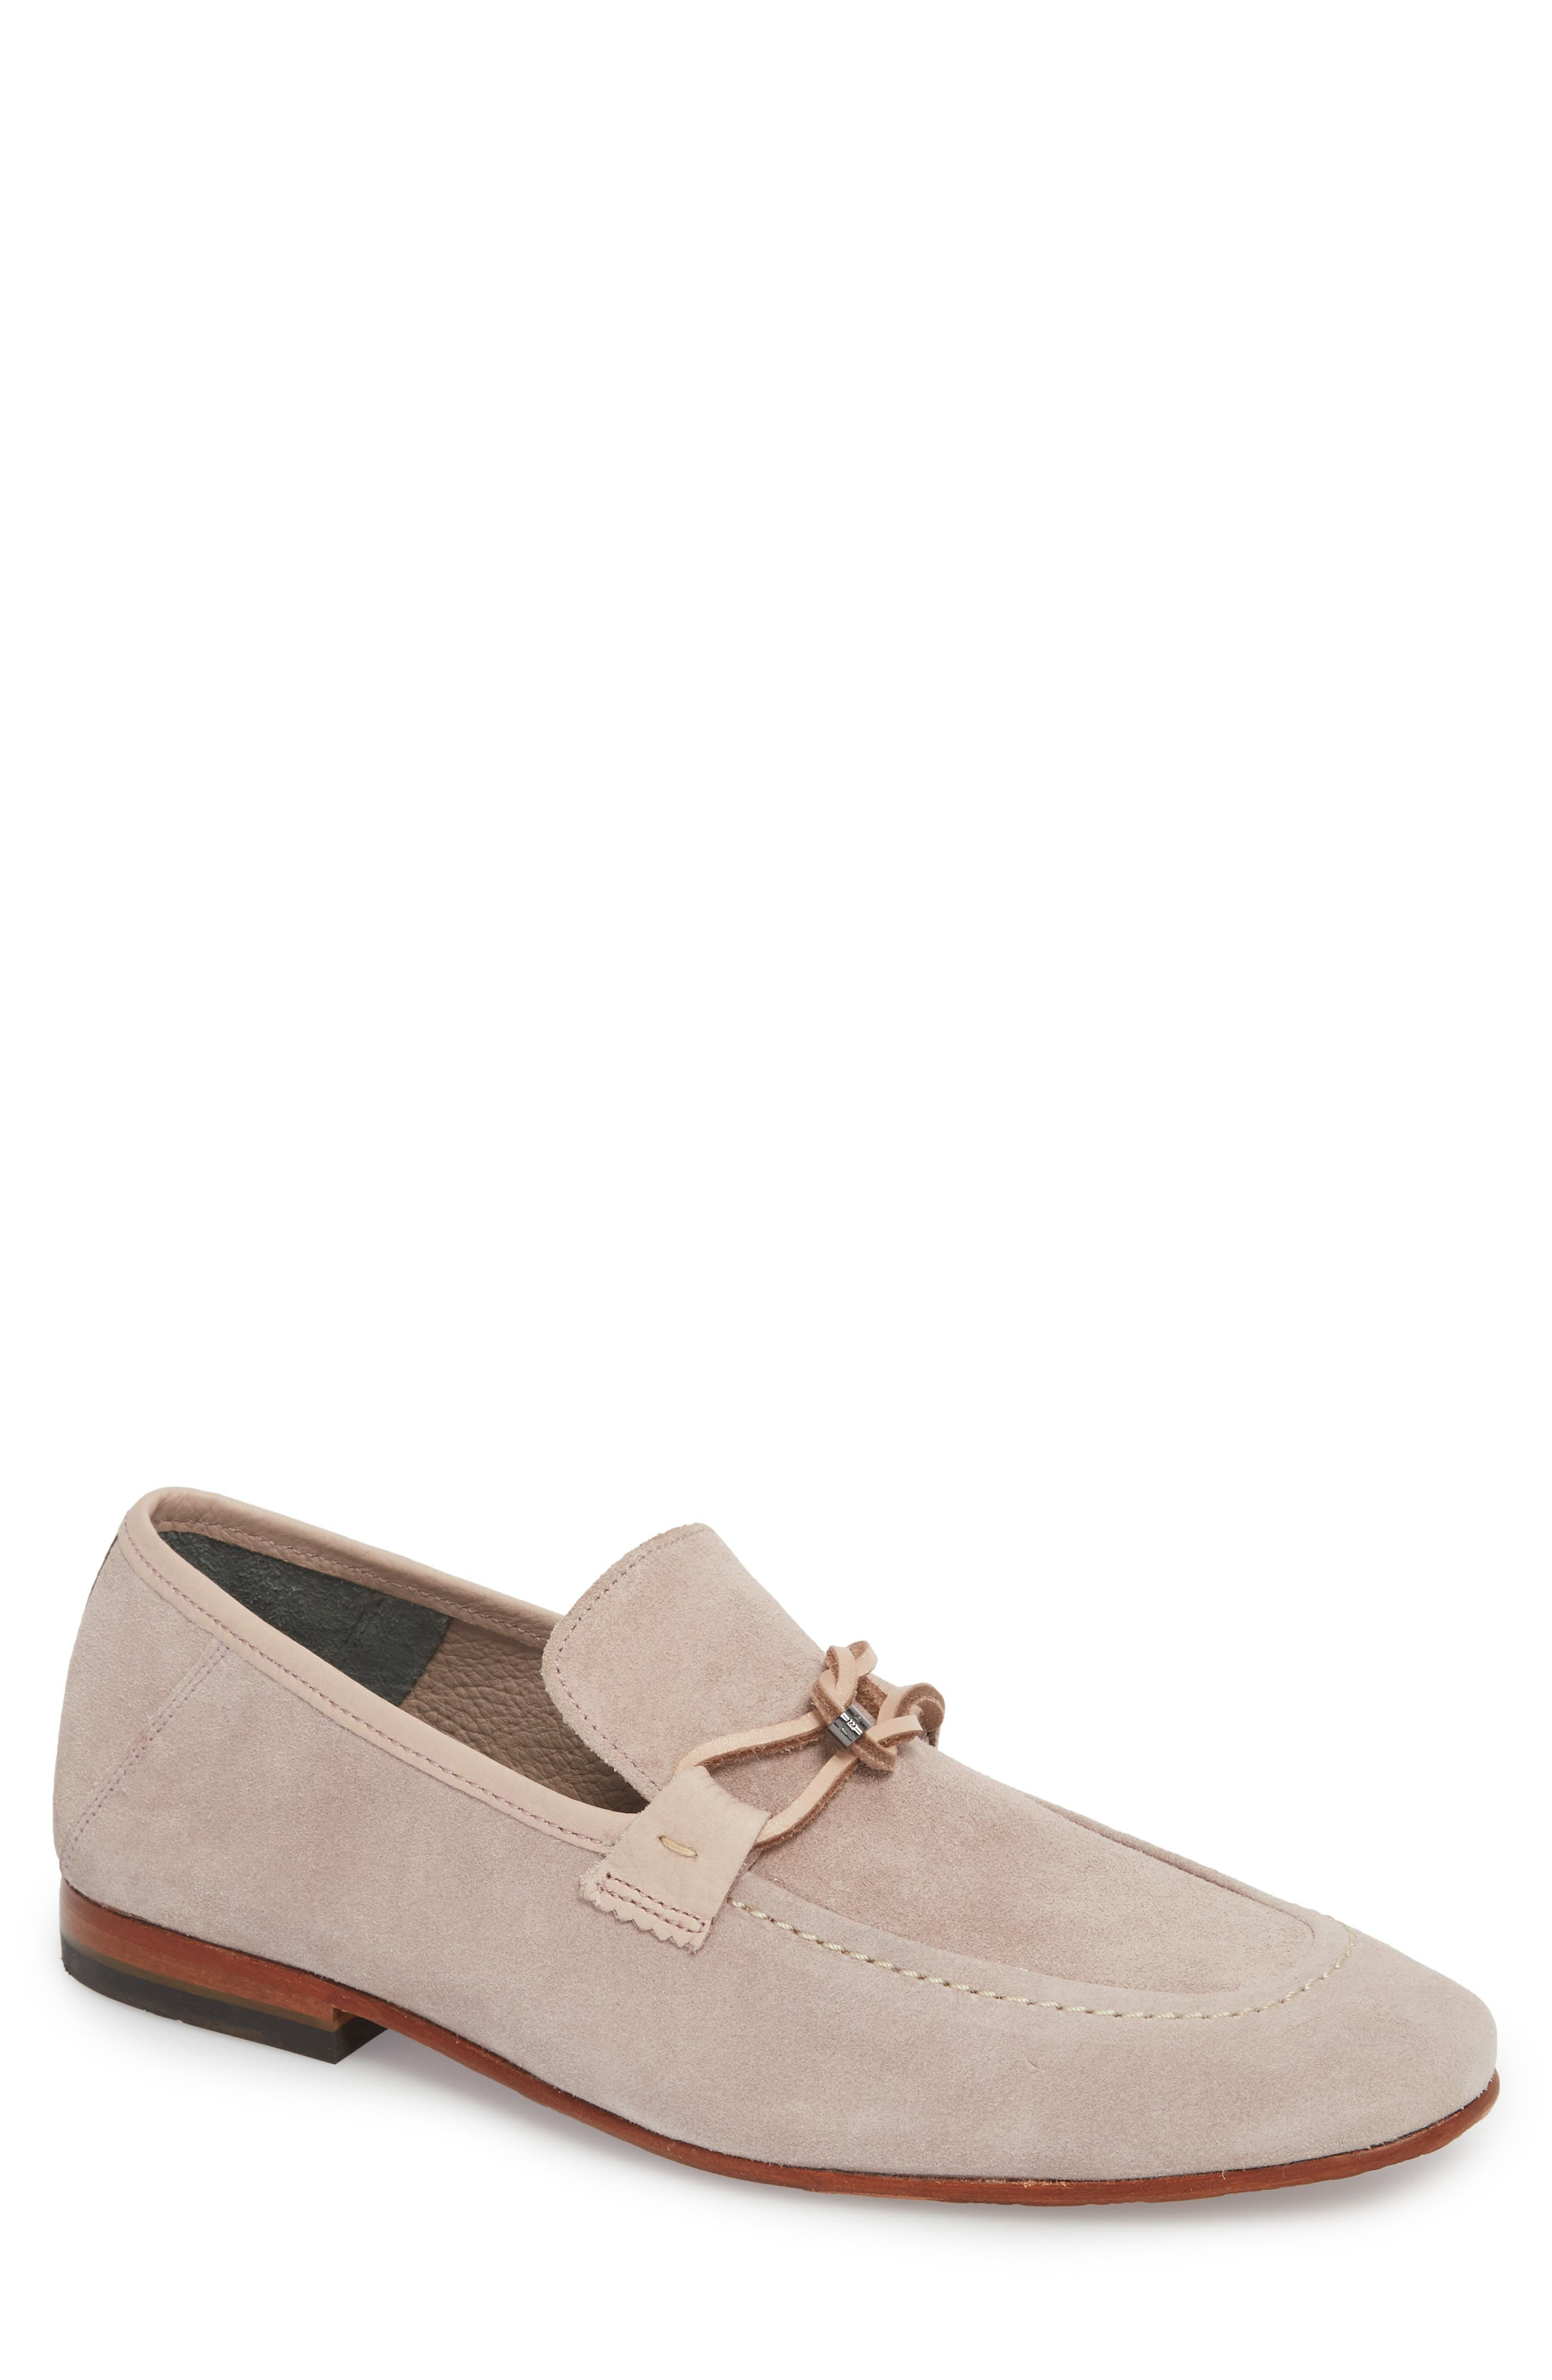 Hoppken Convertible Knotted Loafer,                         Main,                         color, Light Pink Suede